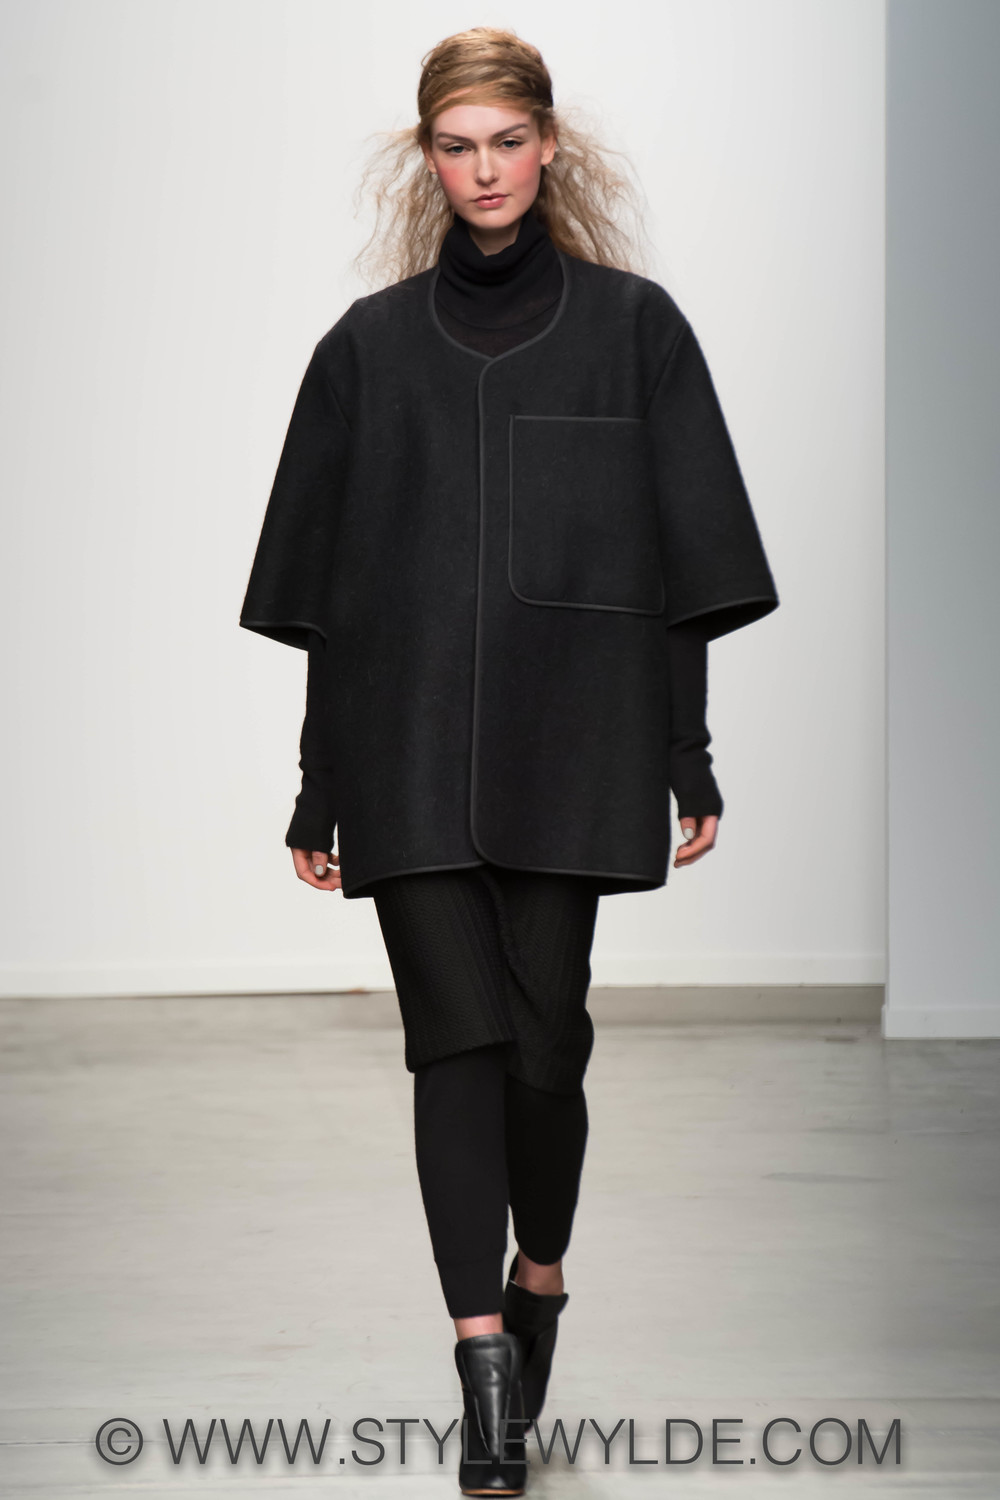 Stylewylde_adetacher_AW14_Gallery (1 of 24).jpg